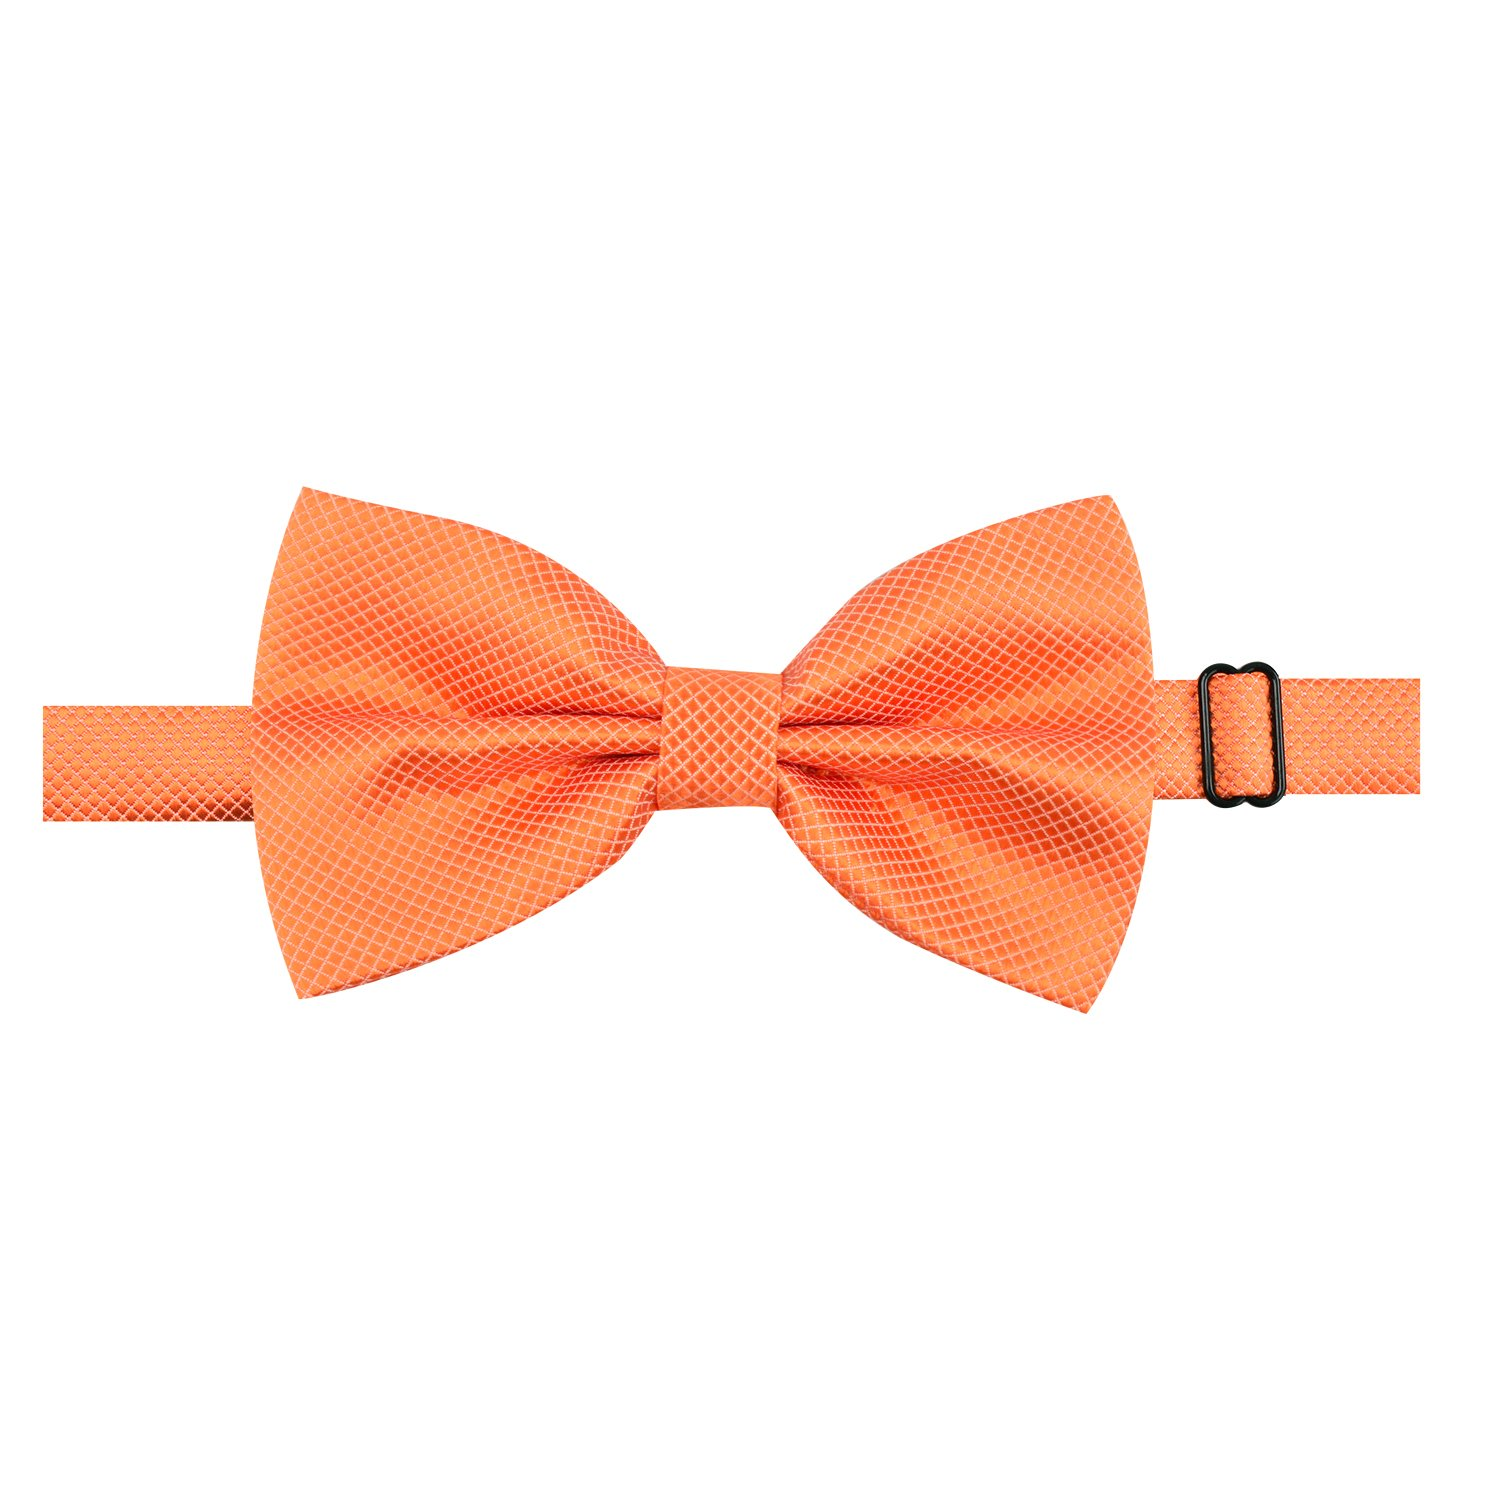 Alizeal Mens Formal Solid Adjustable Bow Tie-Wine Red